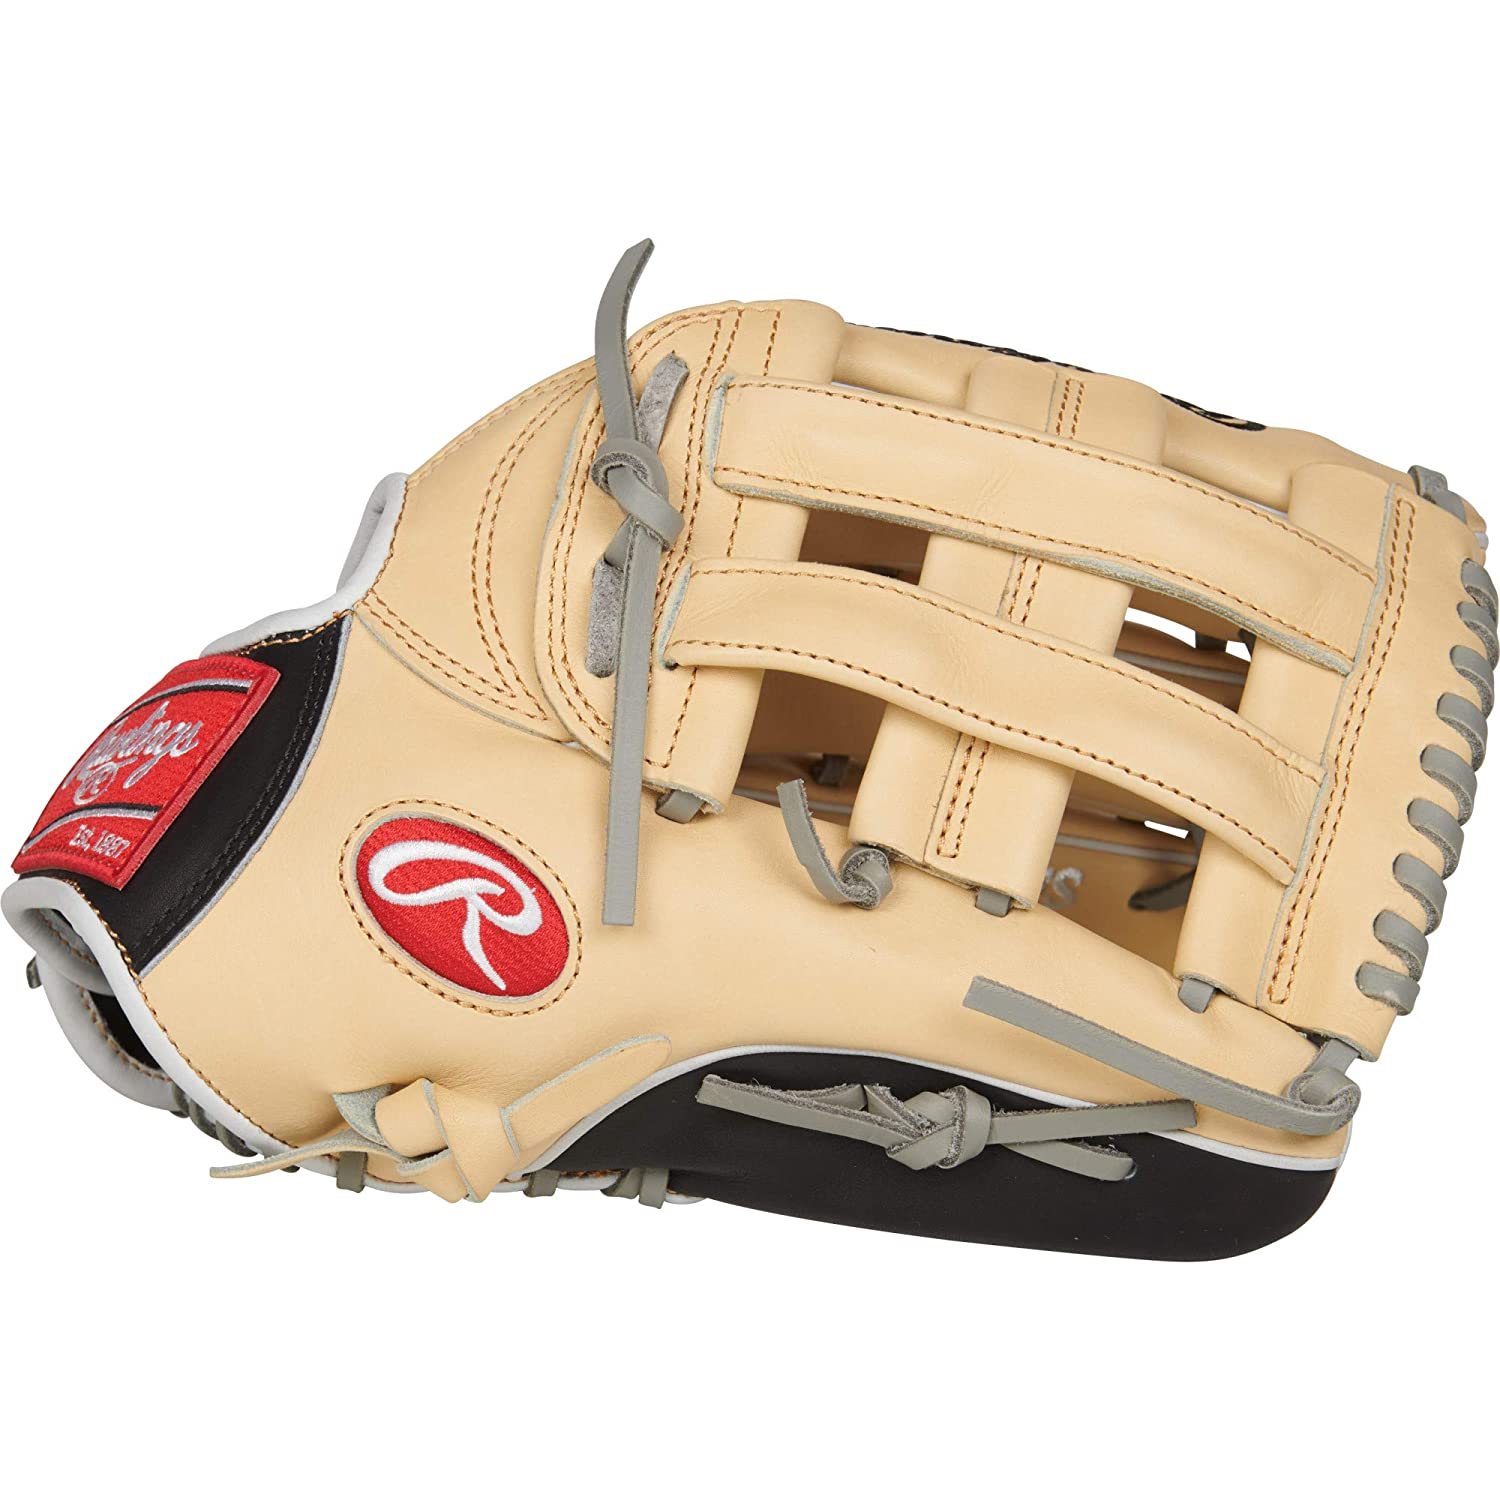 贅沢屋の Rawlings Heart of the 12.75 Hide 12.75 pro3039